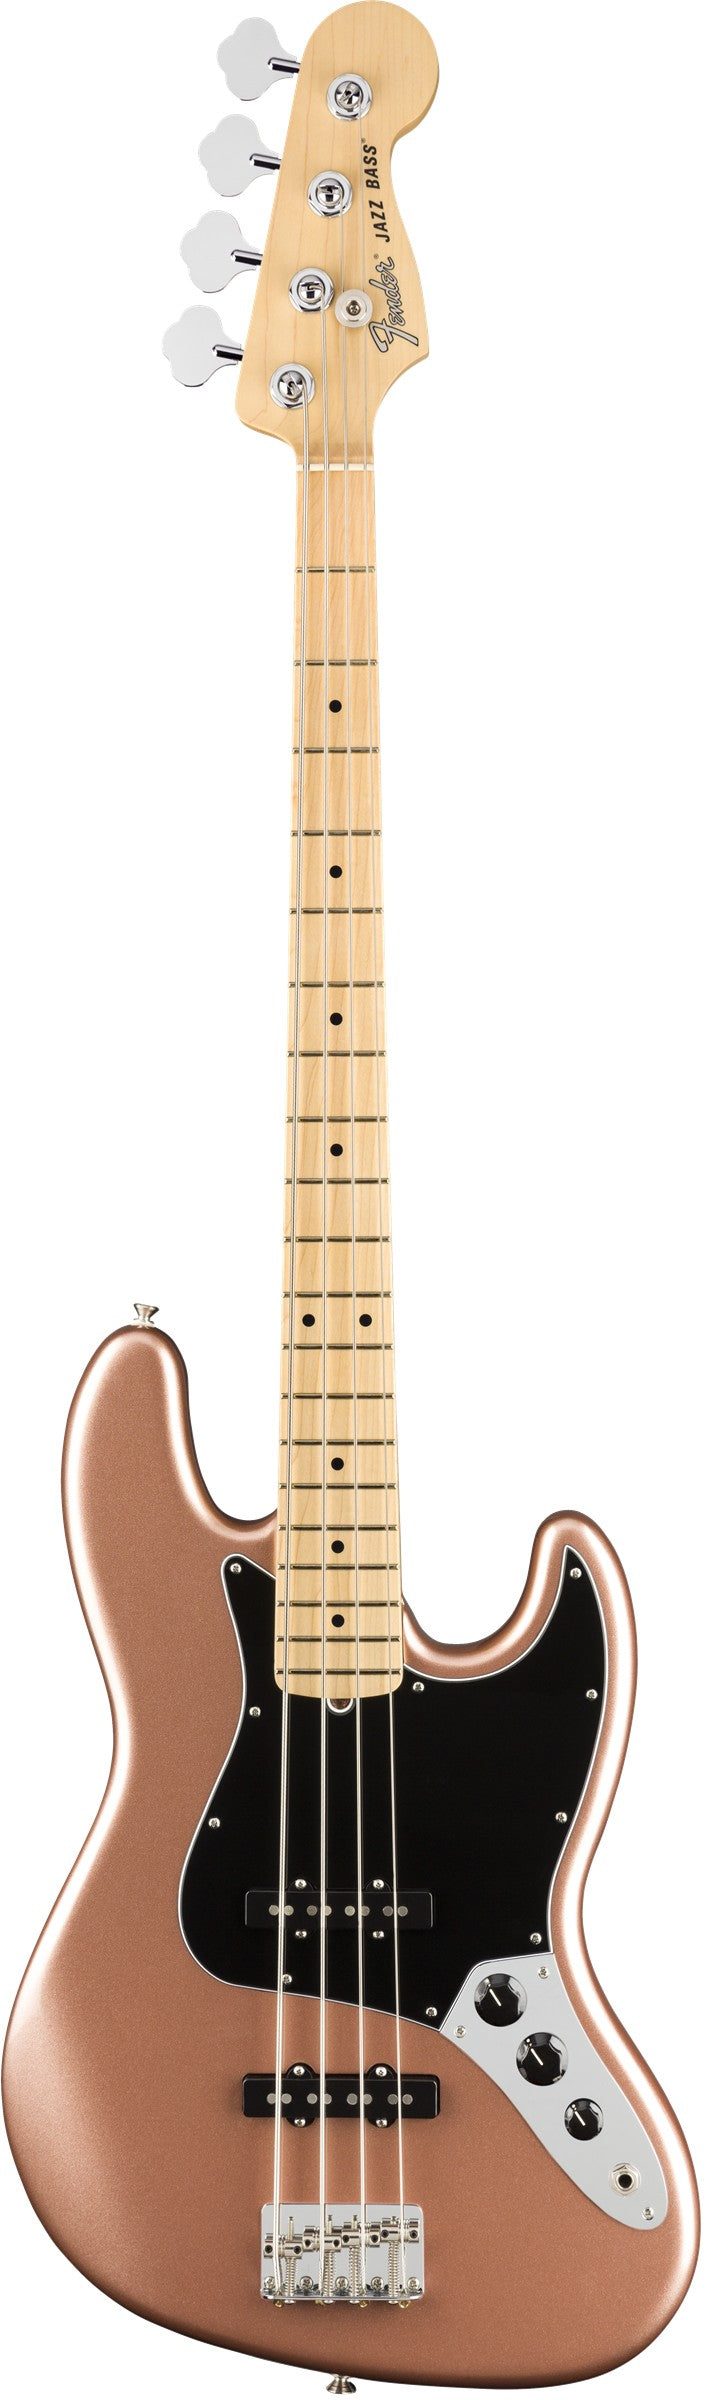 Fender American Performer Jazz Bass, Maple Fingerboard